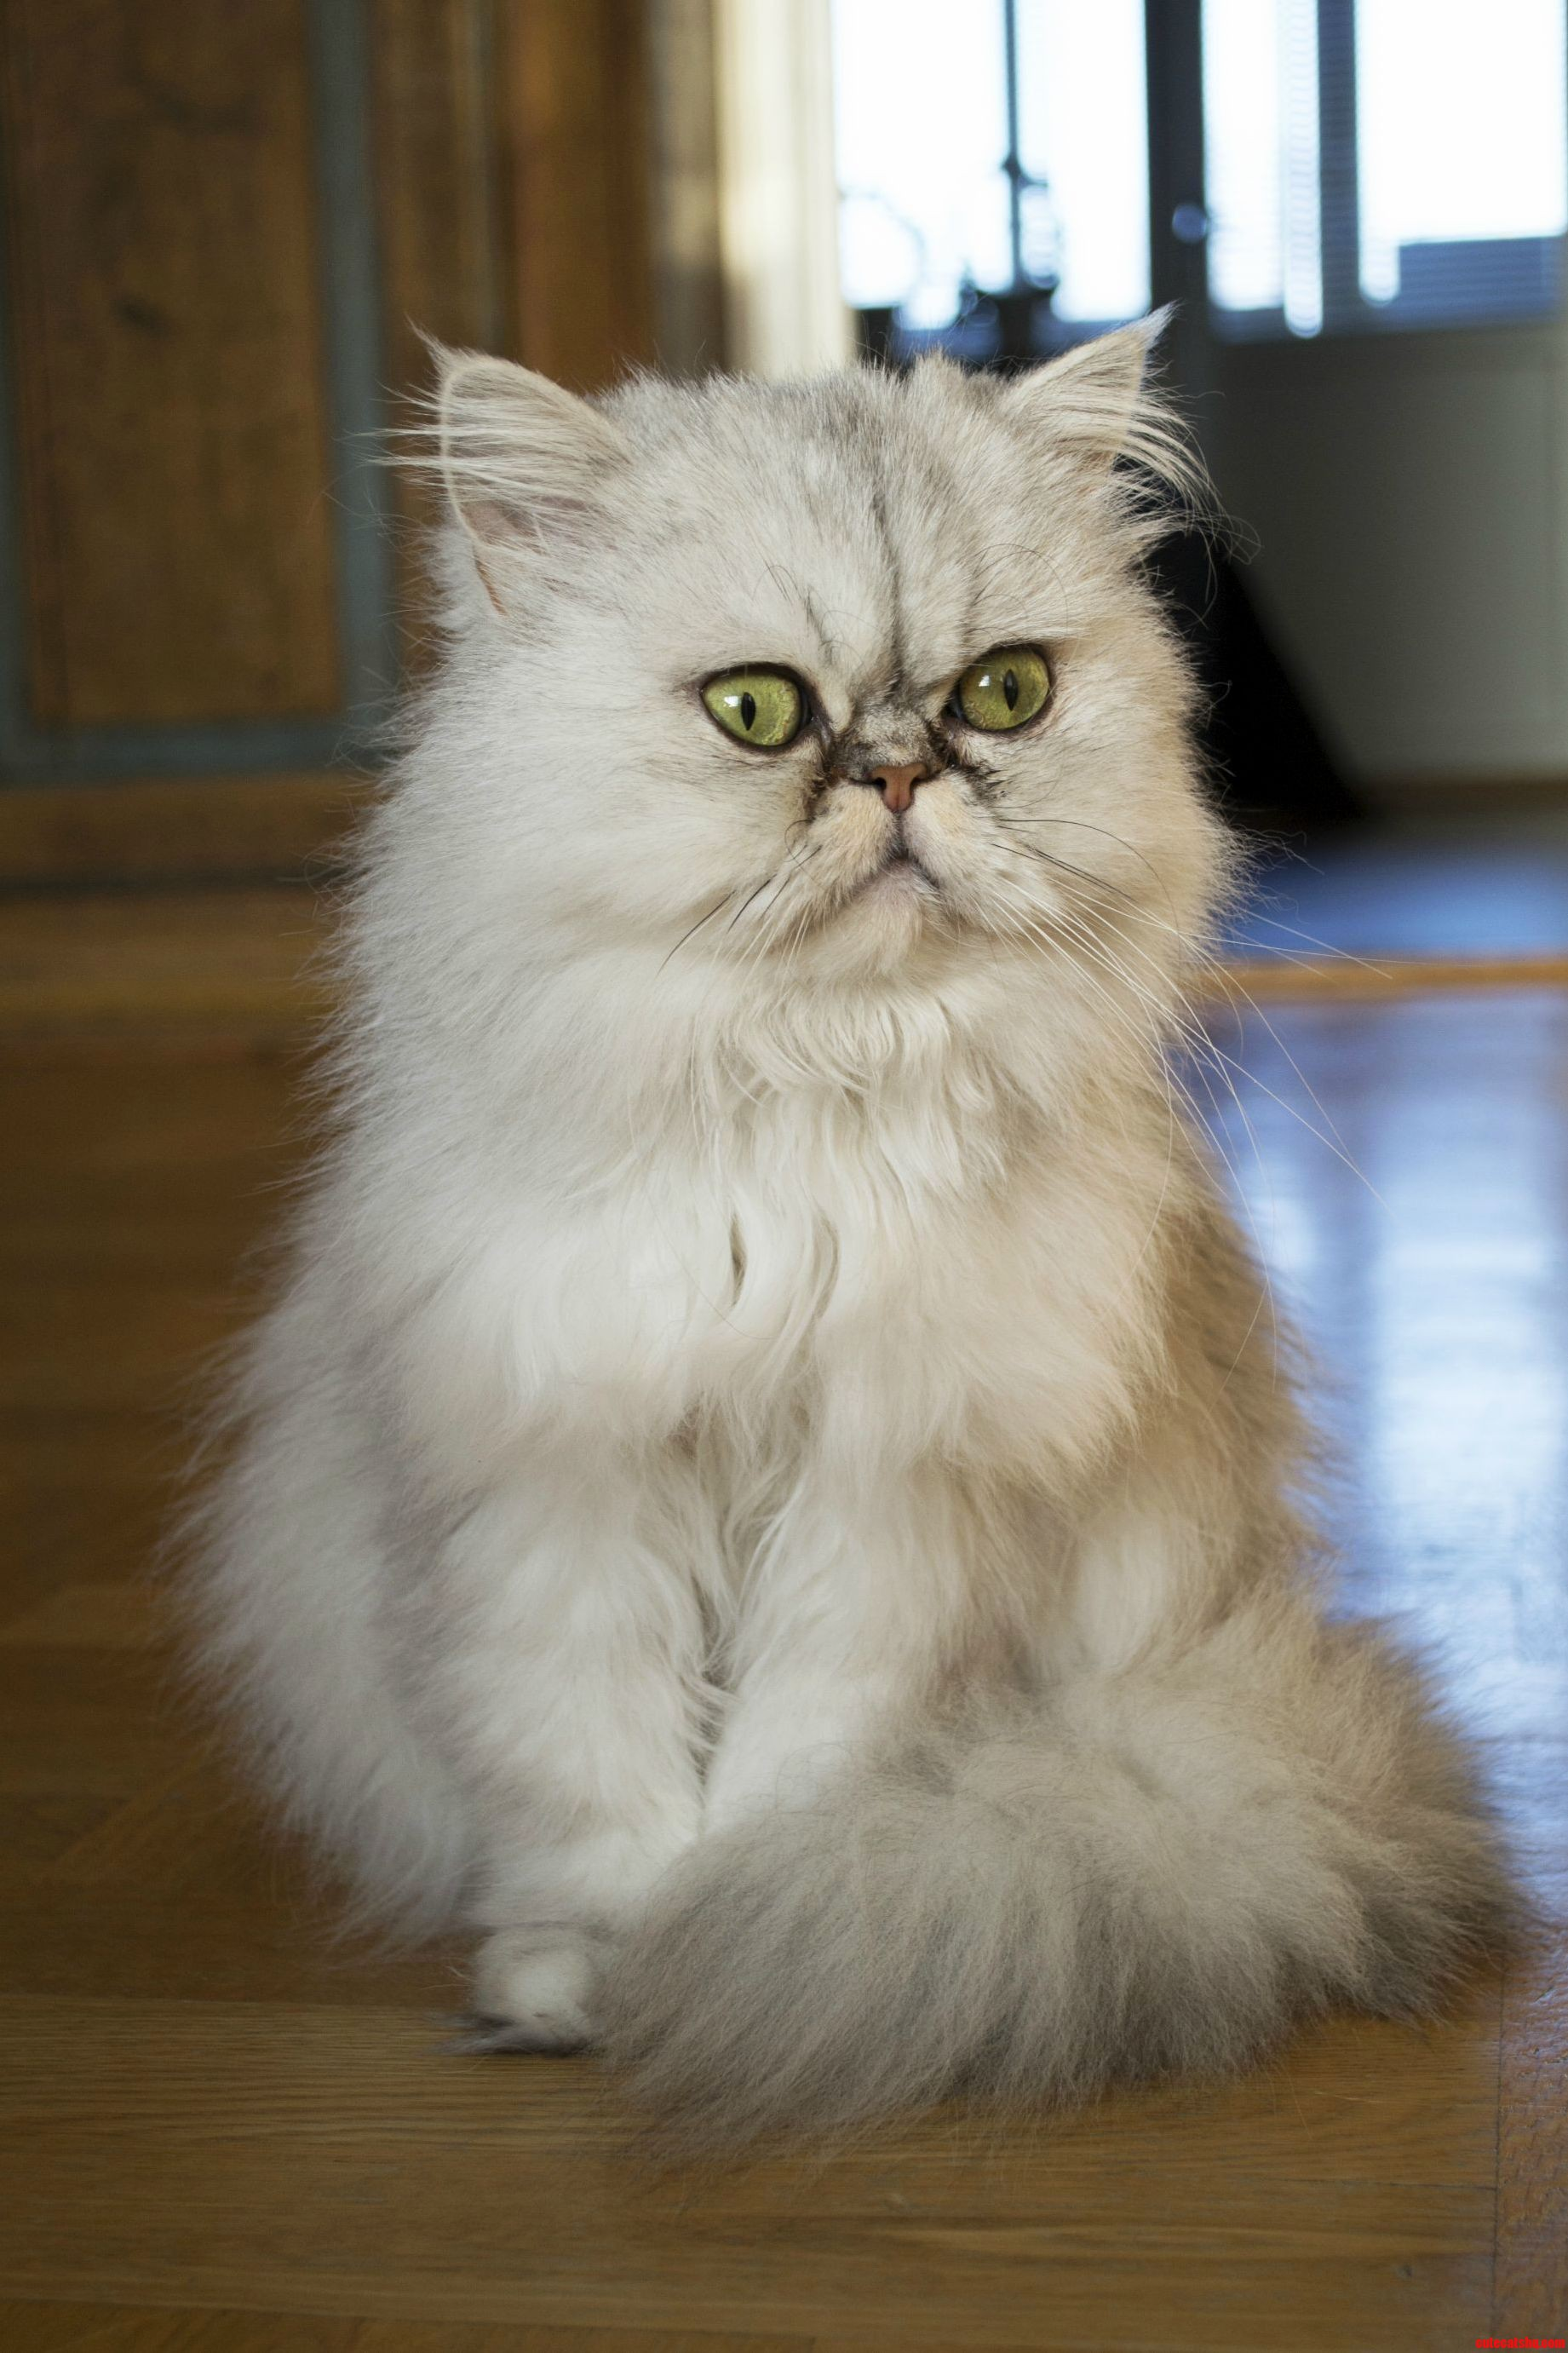 Meet My Persian Bellatrix Lestrange.